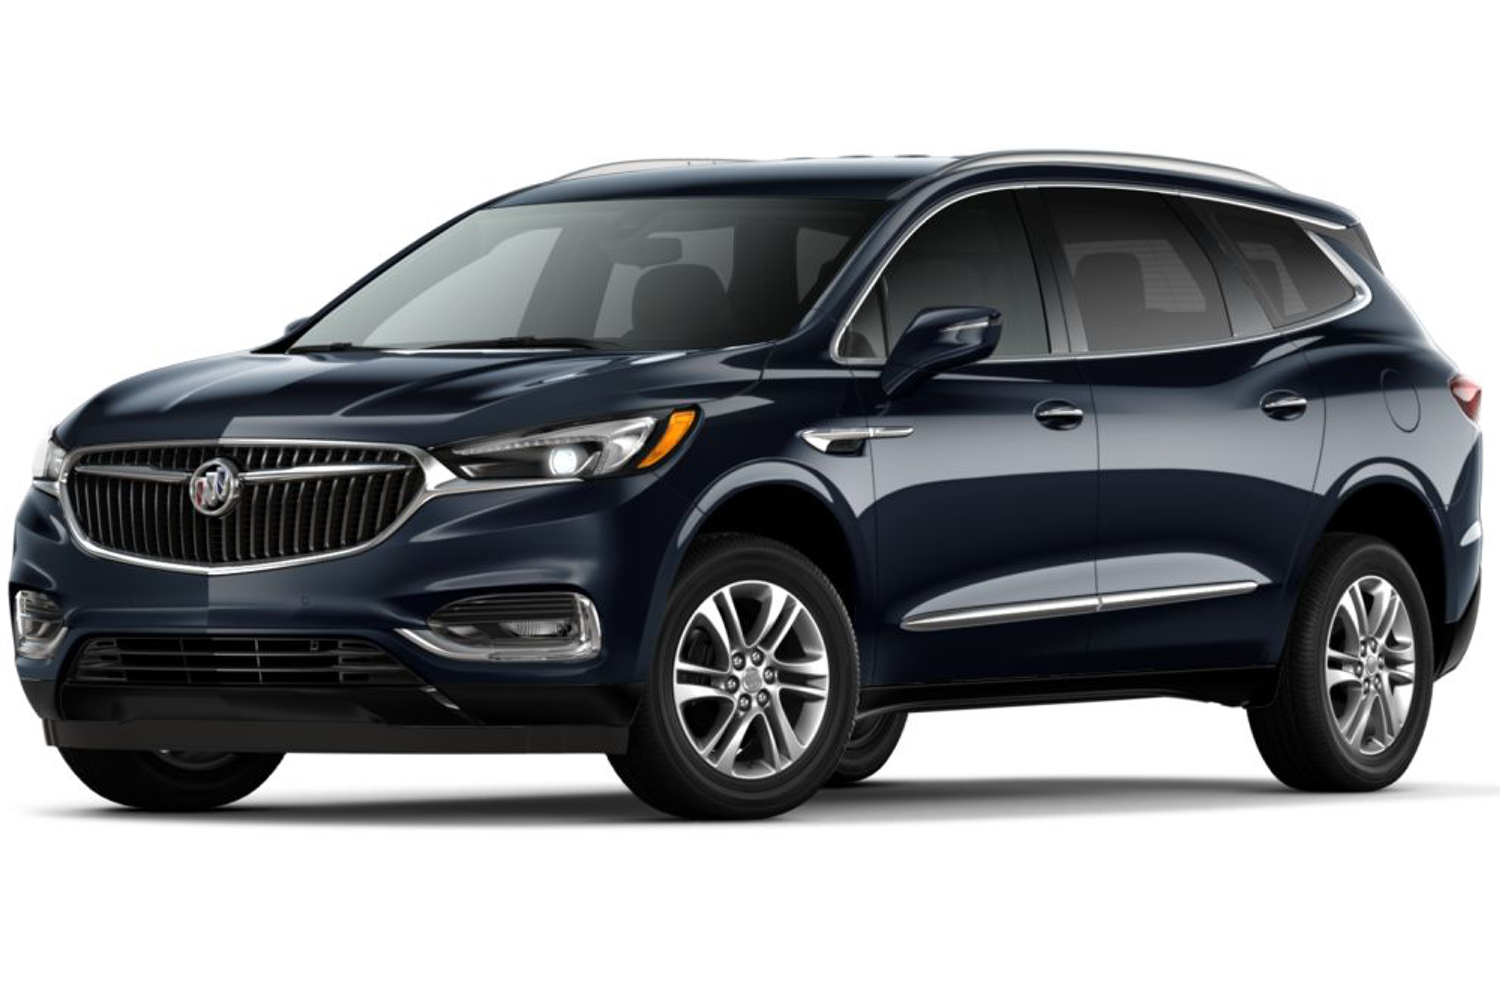 2020 Buick Enclave Gets New Dark Moon Blue Color | Gm Authority New 2021 Buick Enclave Avenir Owners Manual, Pictures, Colors